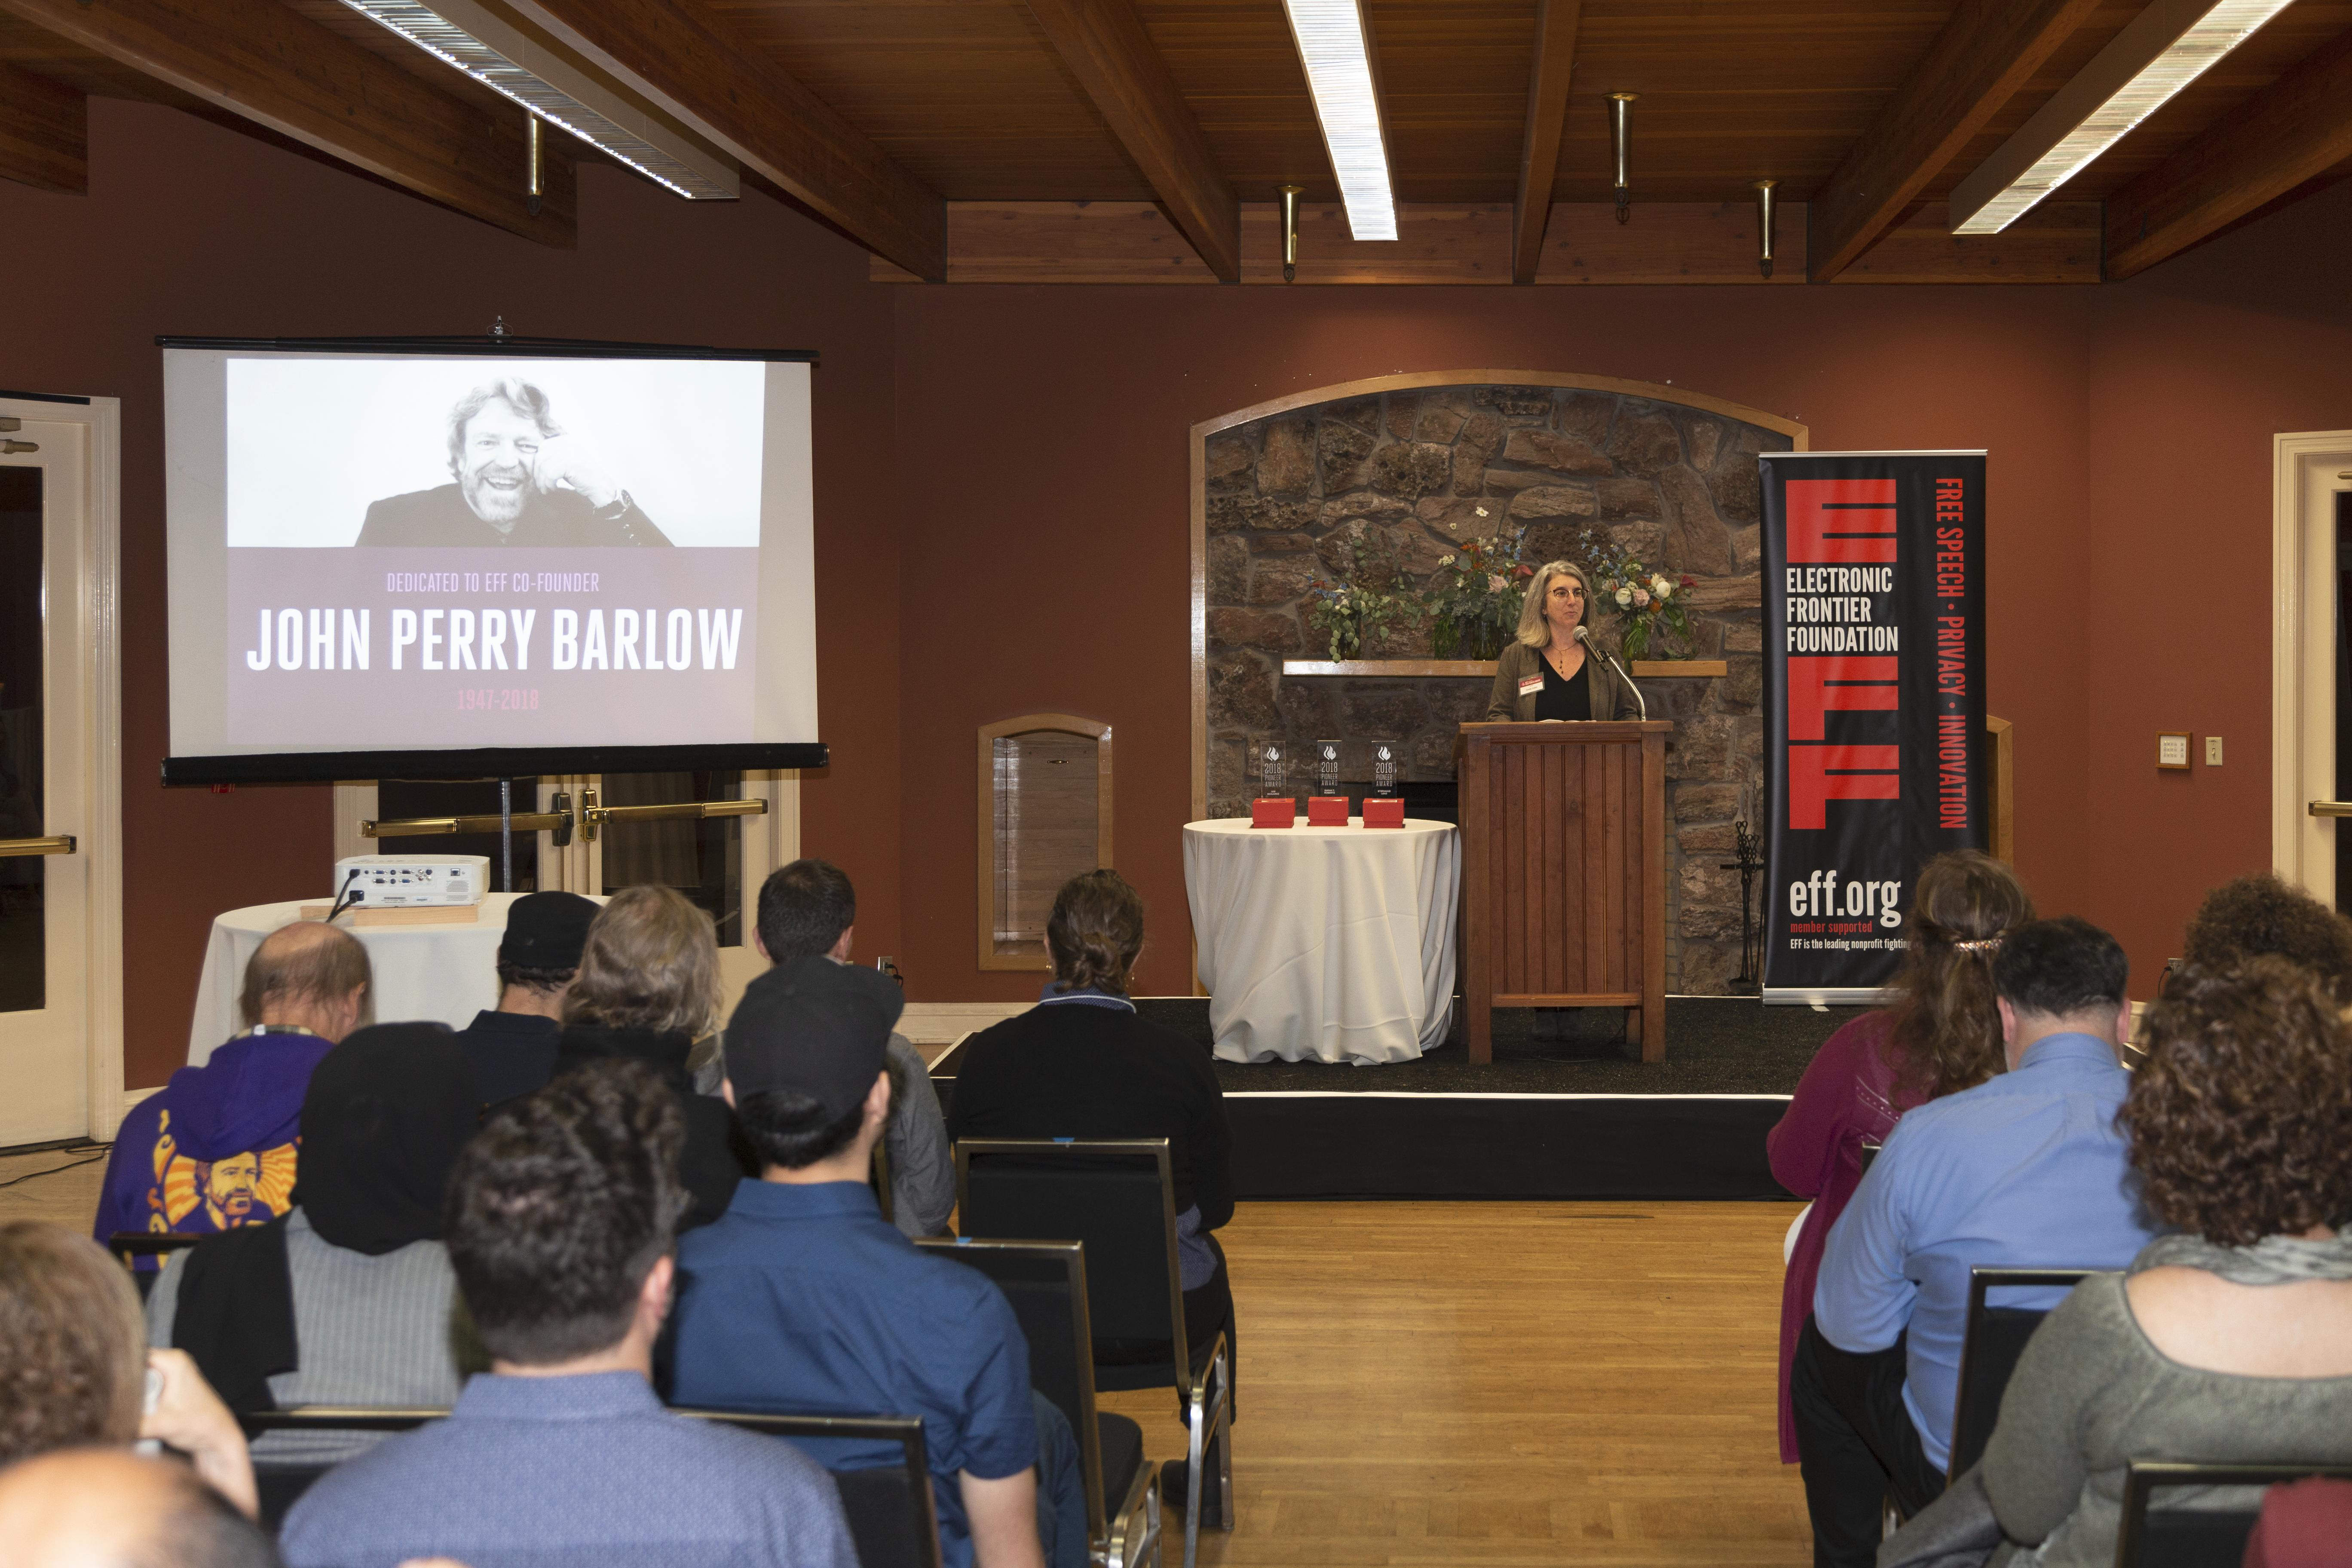 Picture of screen and raised dias with podium. To the left, is a projected image of our co-founder, John Perry Barlow. At the poduim on the right is our Executive Director Cindy Cohn, opening the